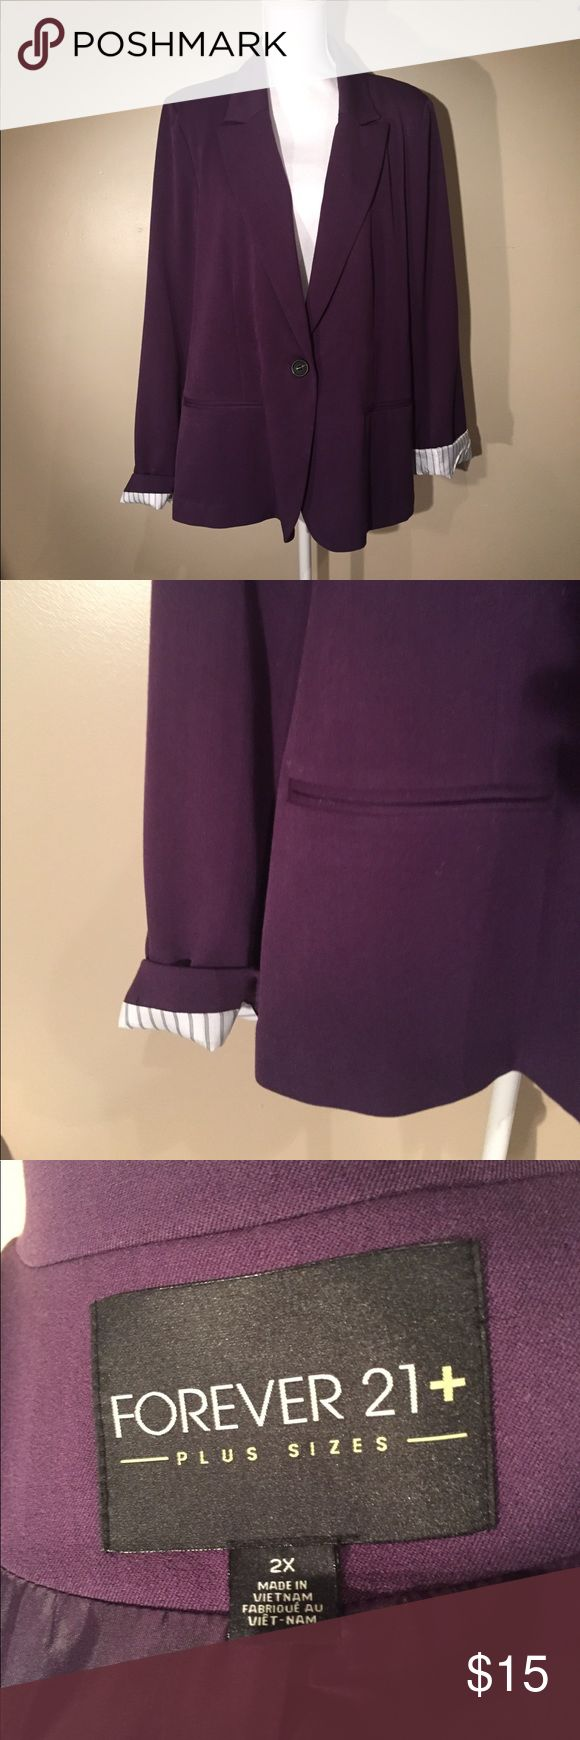 Purple blazer Beautiful dark purple color on this single button blazer. Sleeves roll up to show the striped lining inside of them. Forever 21 Jackets & Coats Blazers